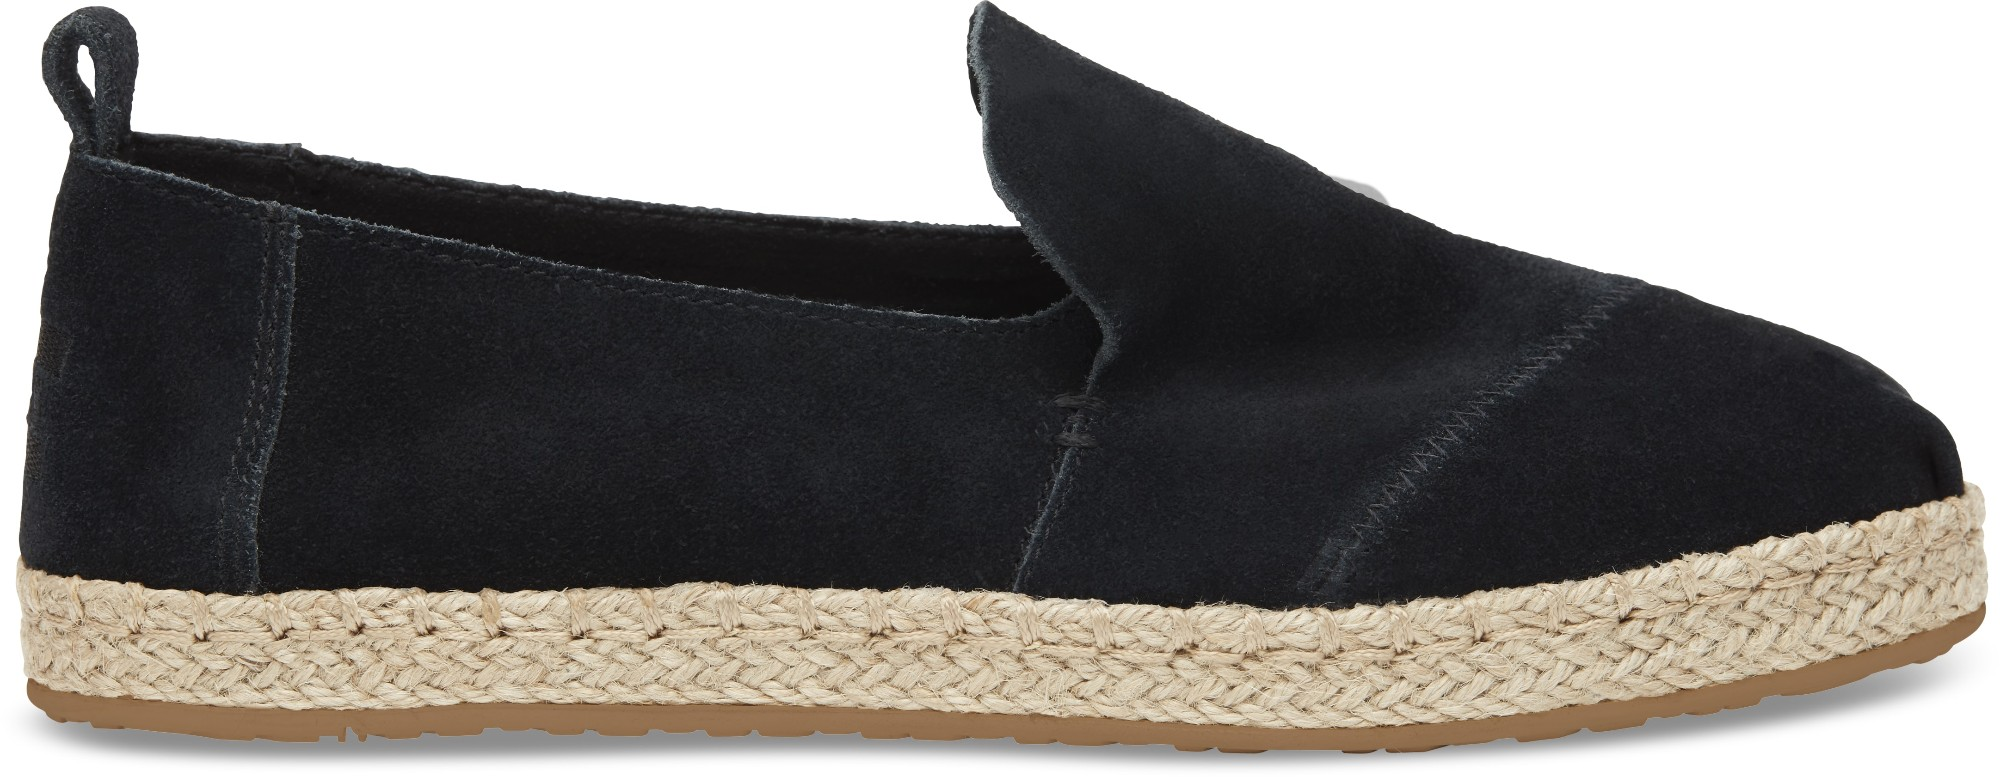 TOMS Suede Women's Deconstructed Alpargata Black 39